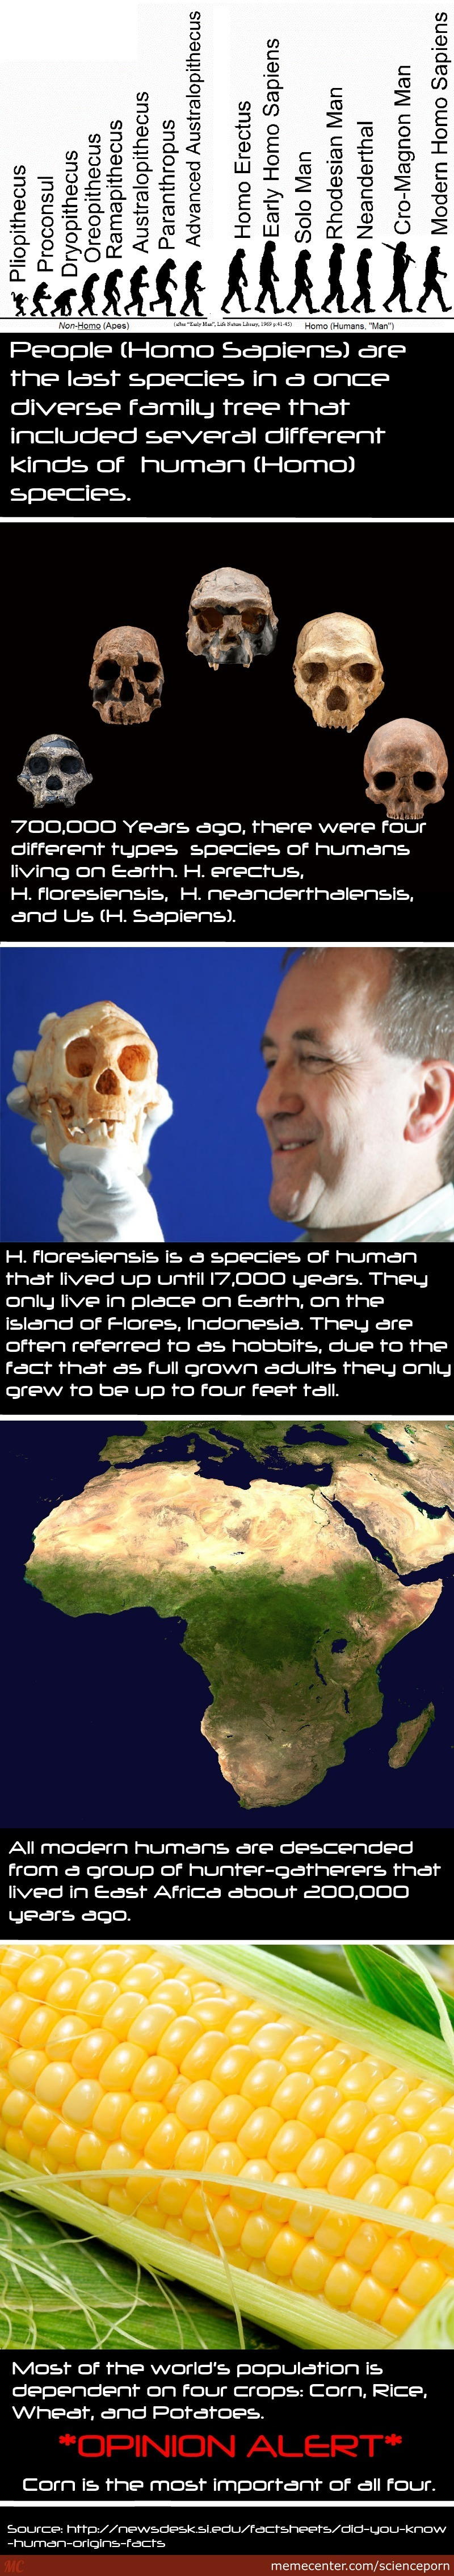 Facts About Humans